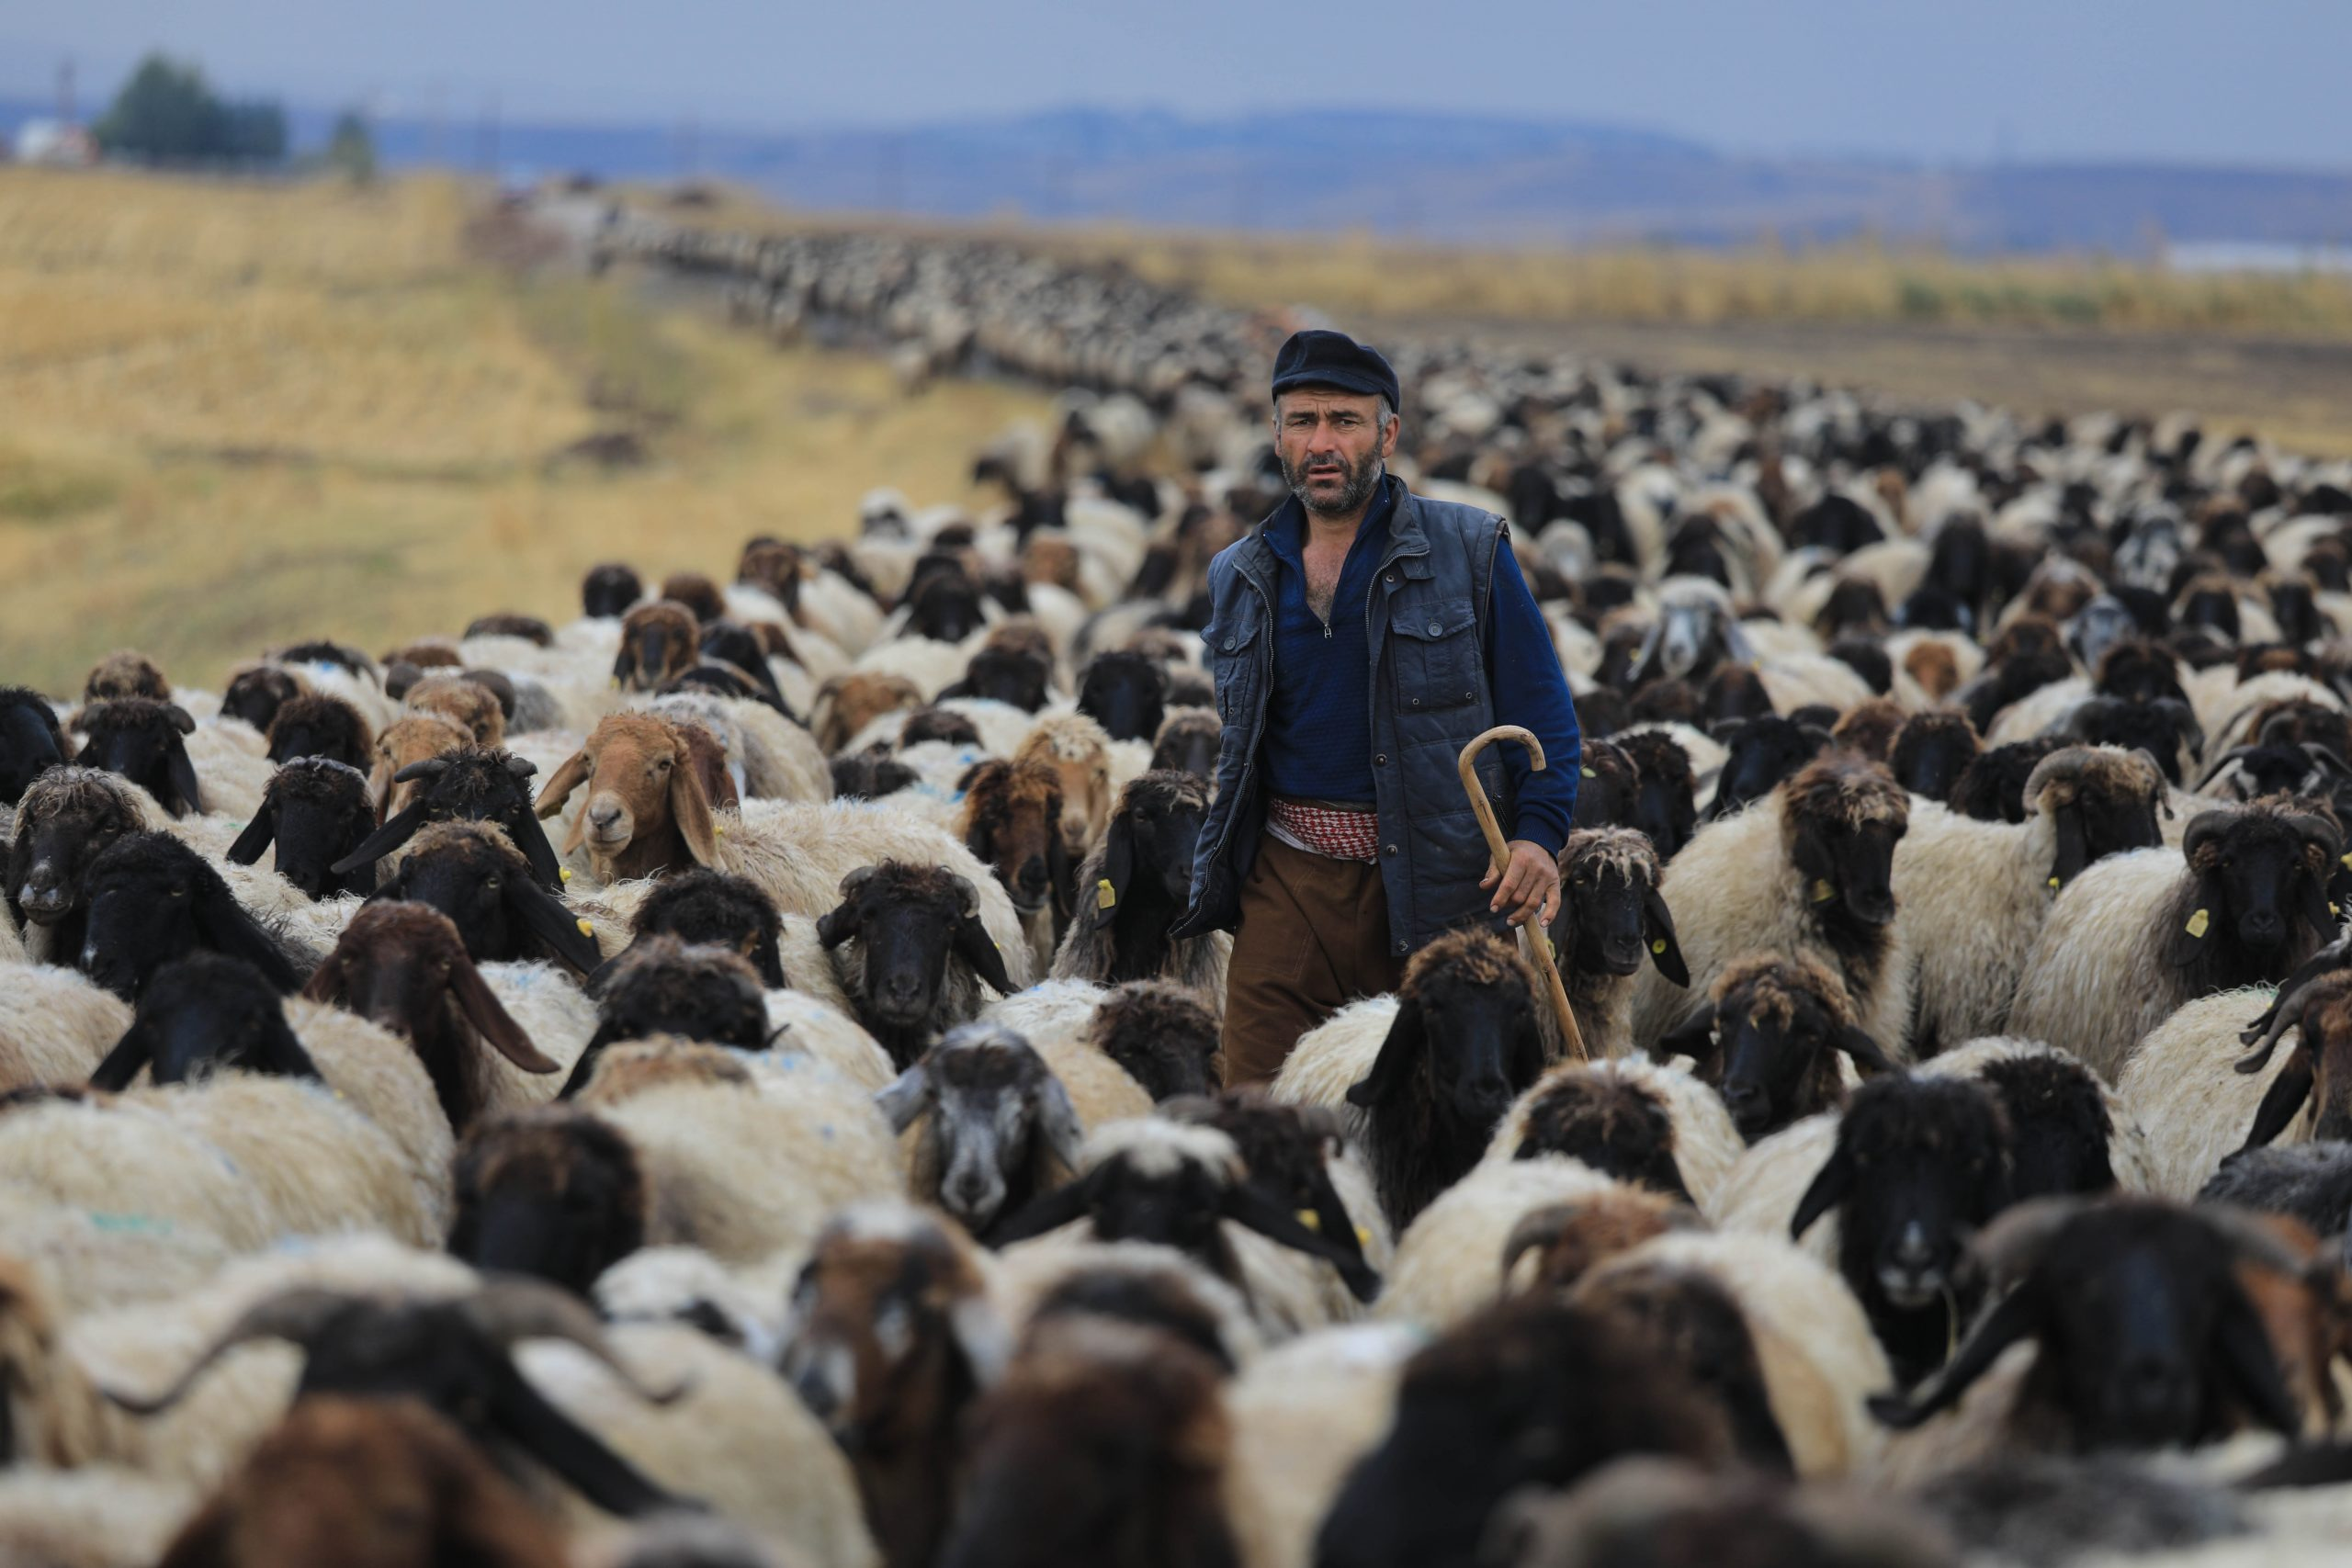 A Kurdish nomad man with some thousands of sheep belonging to his family